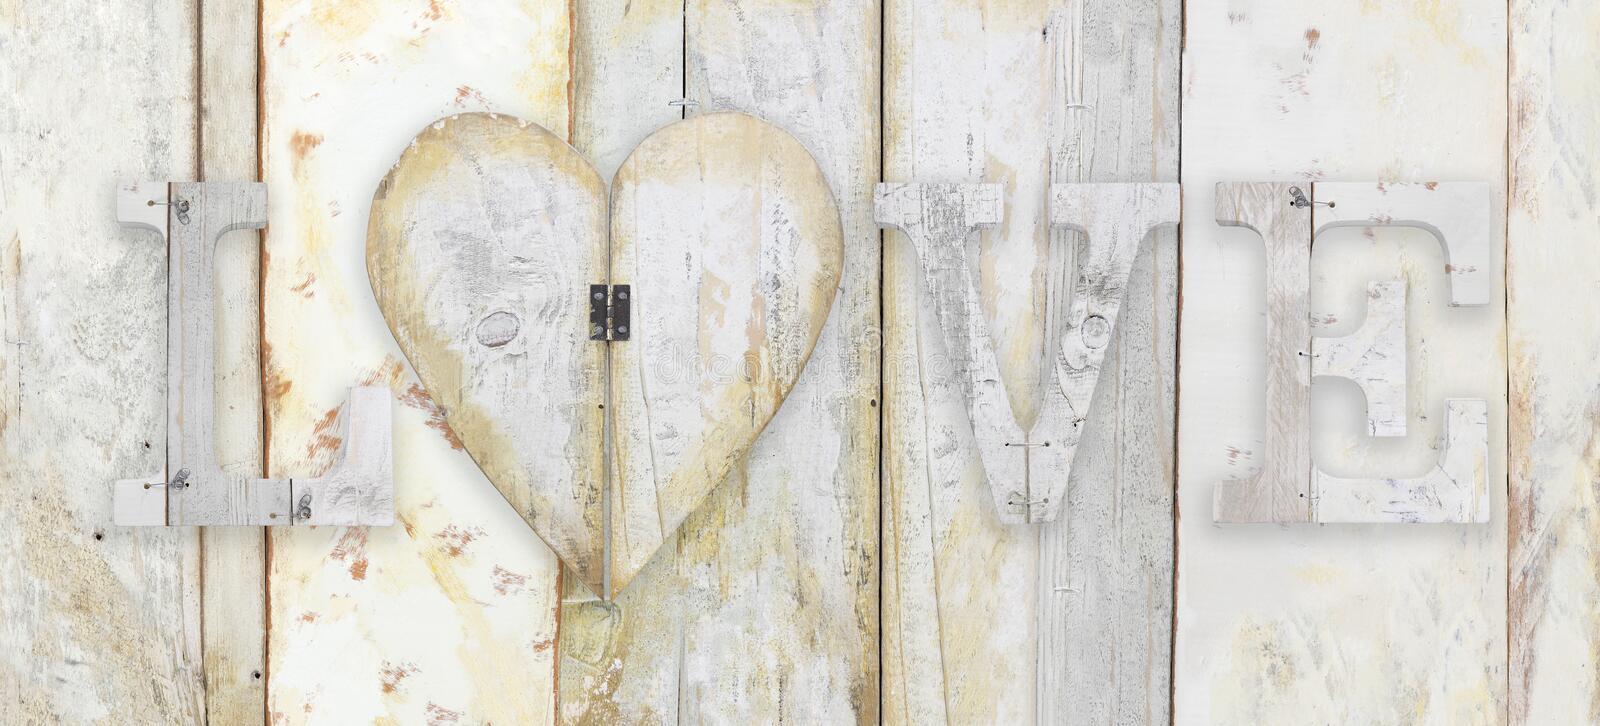 love text with heart shape on wood planks grunge texture background stock photo